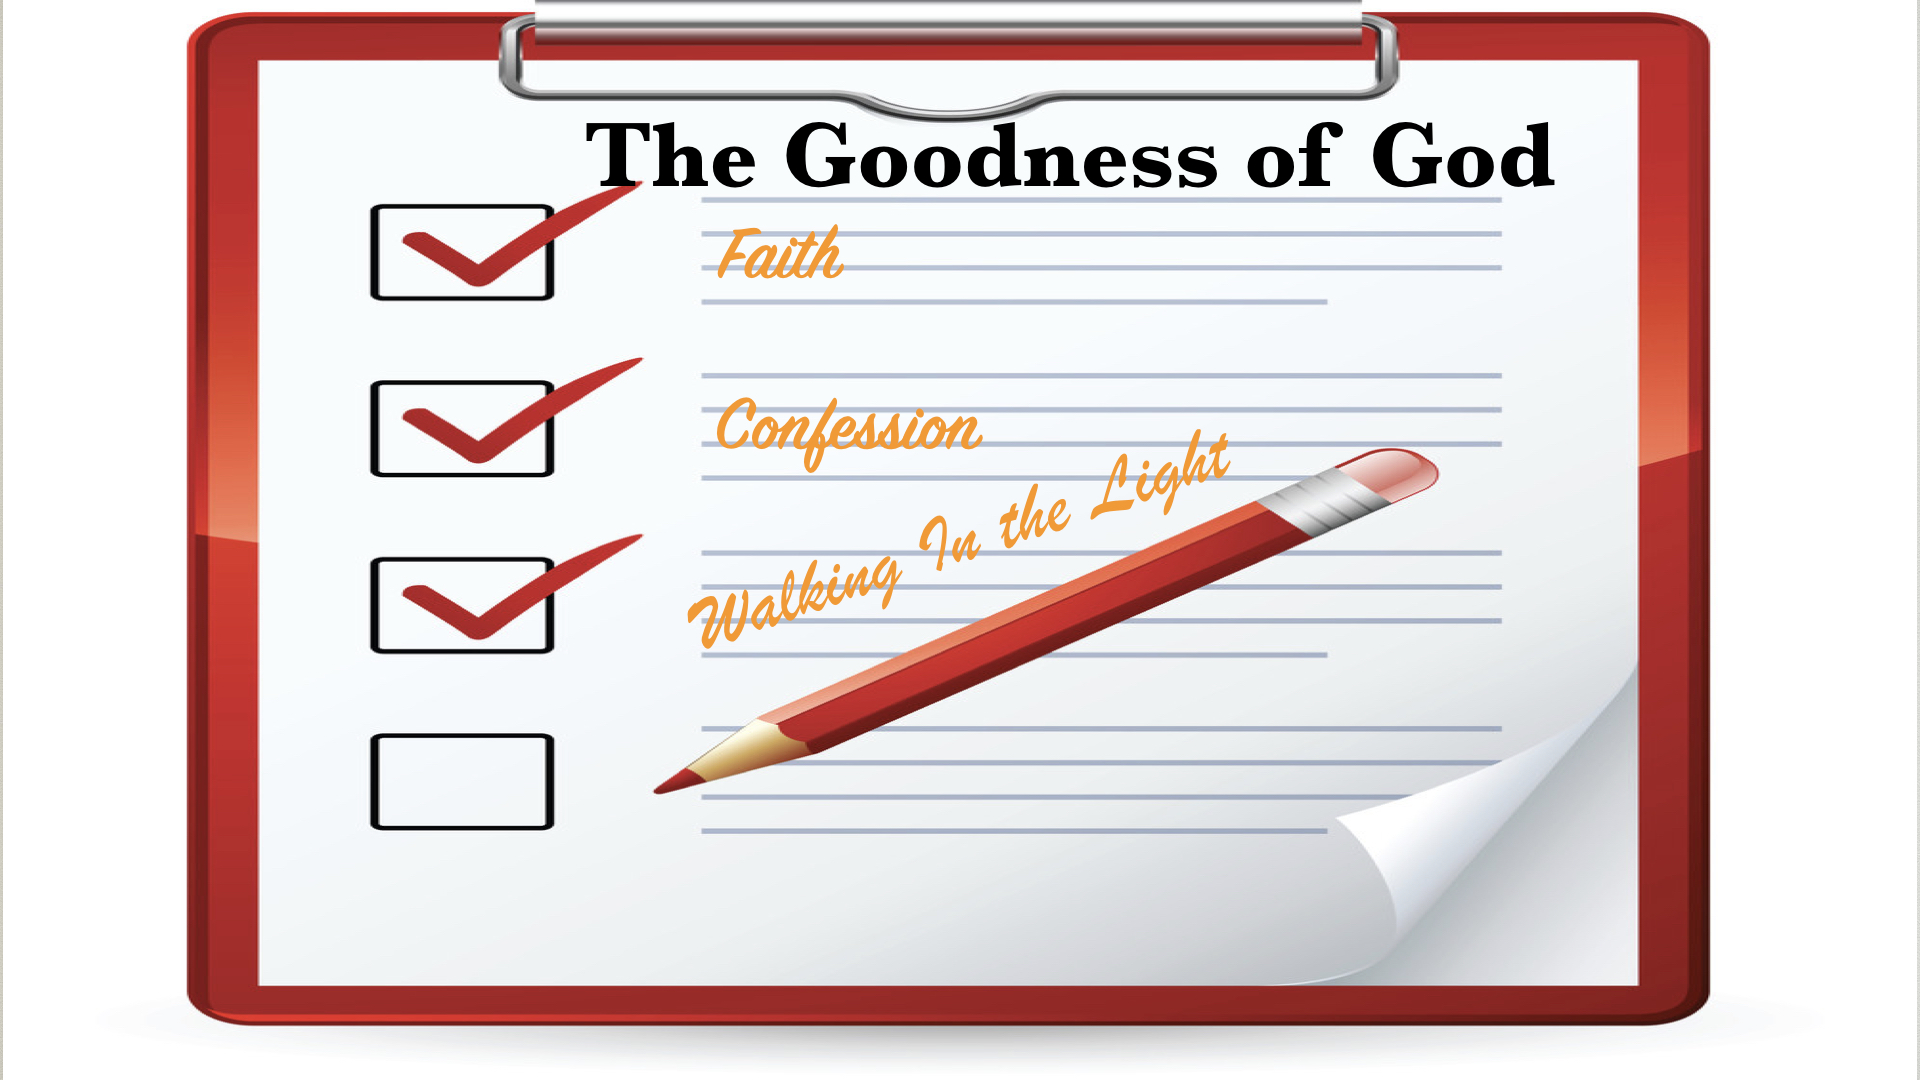 Goodness Checklist 1282018 81009 AM